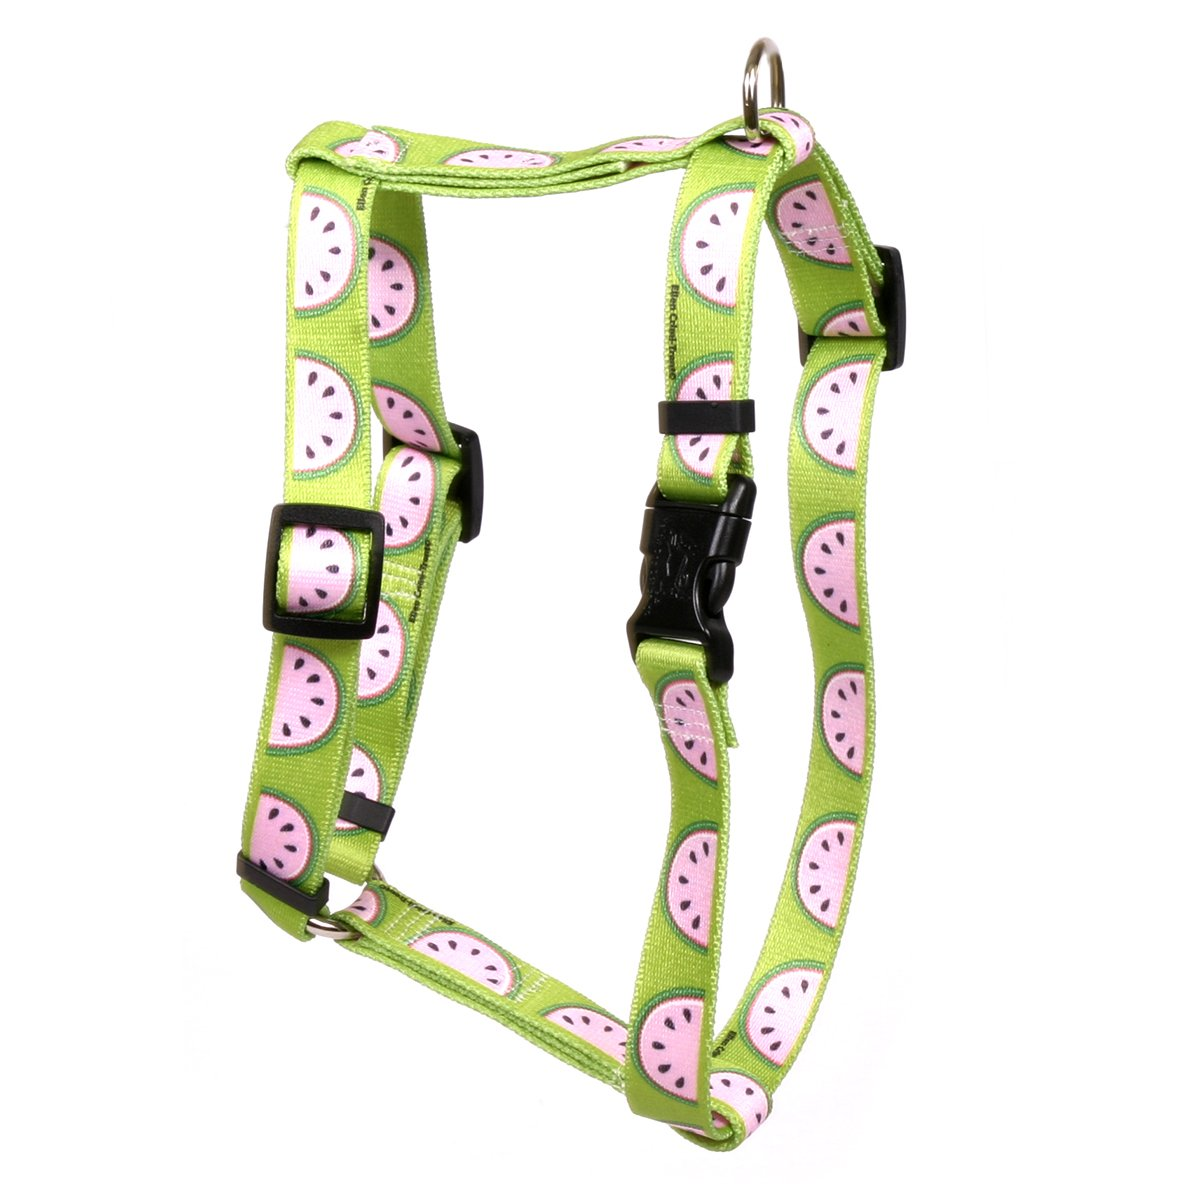 Large 20\ Yellow Dog Design Wonderful Watermelons Roman Style Dog Harness-Large-1  and fits Chest 20 to 28